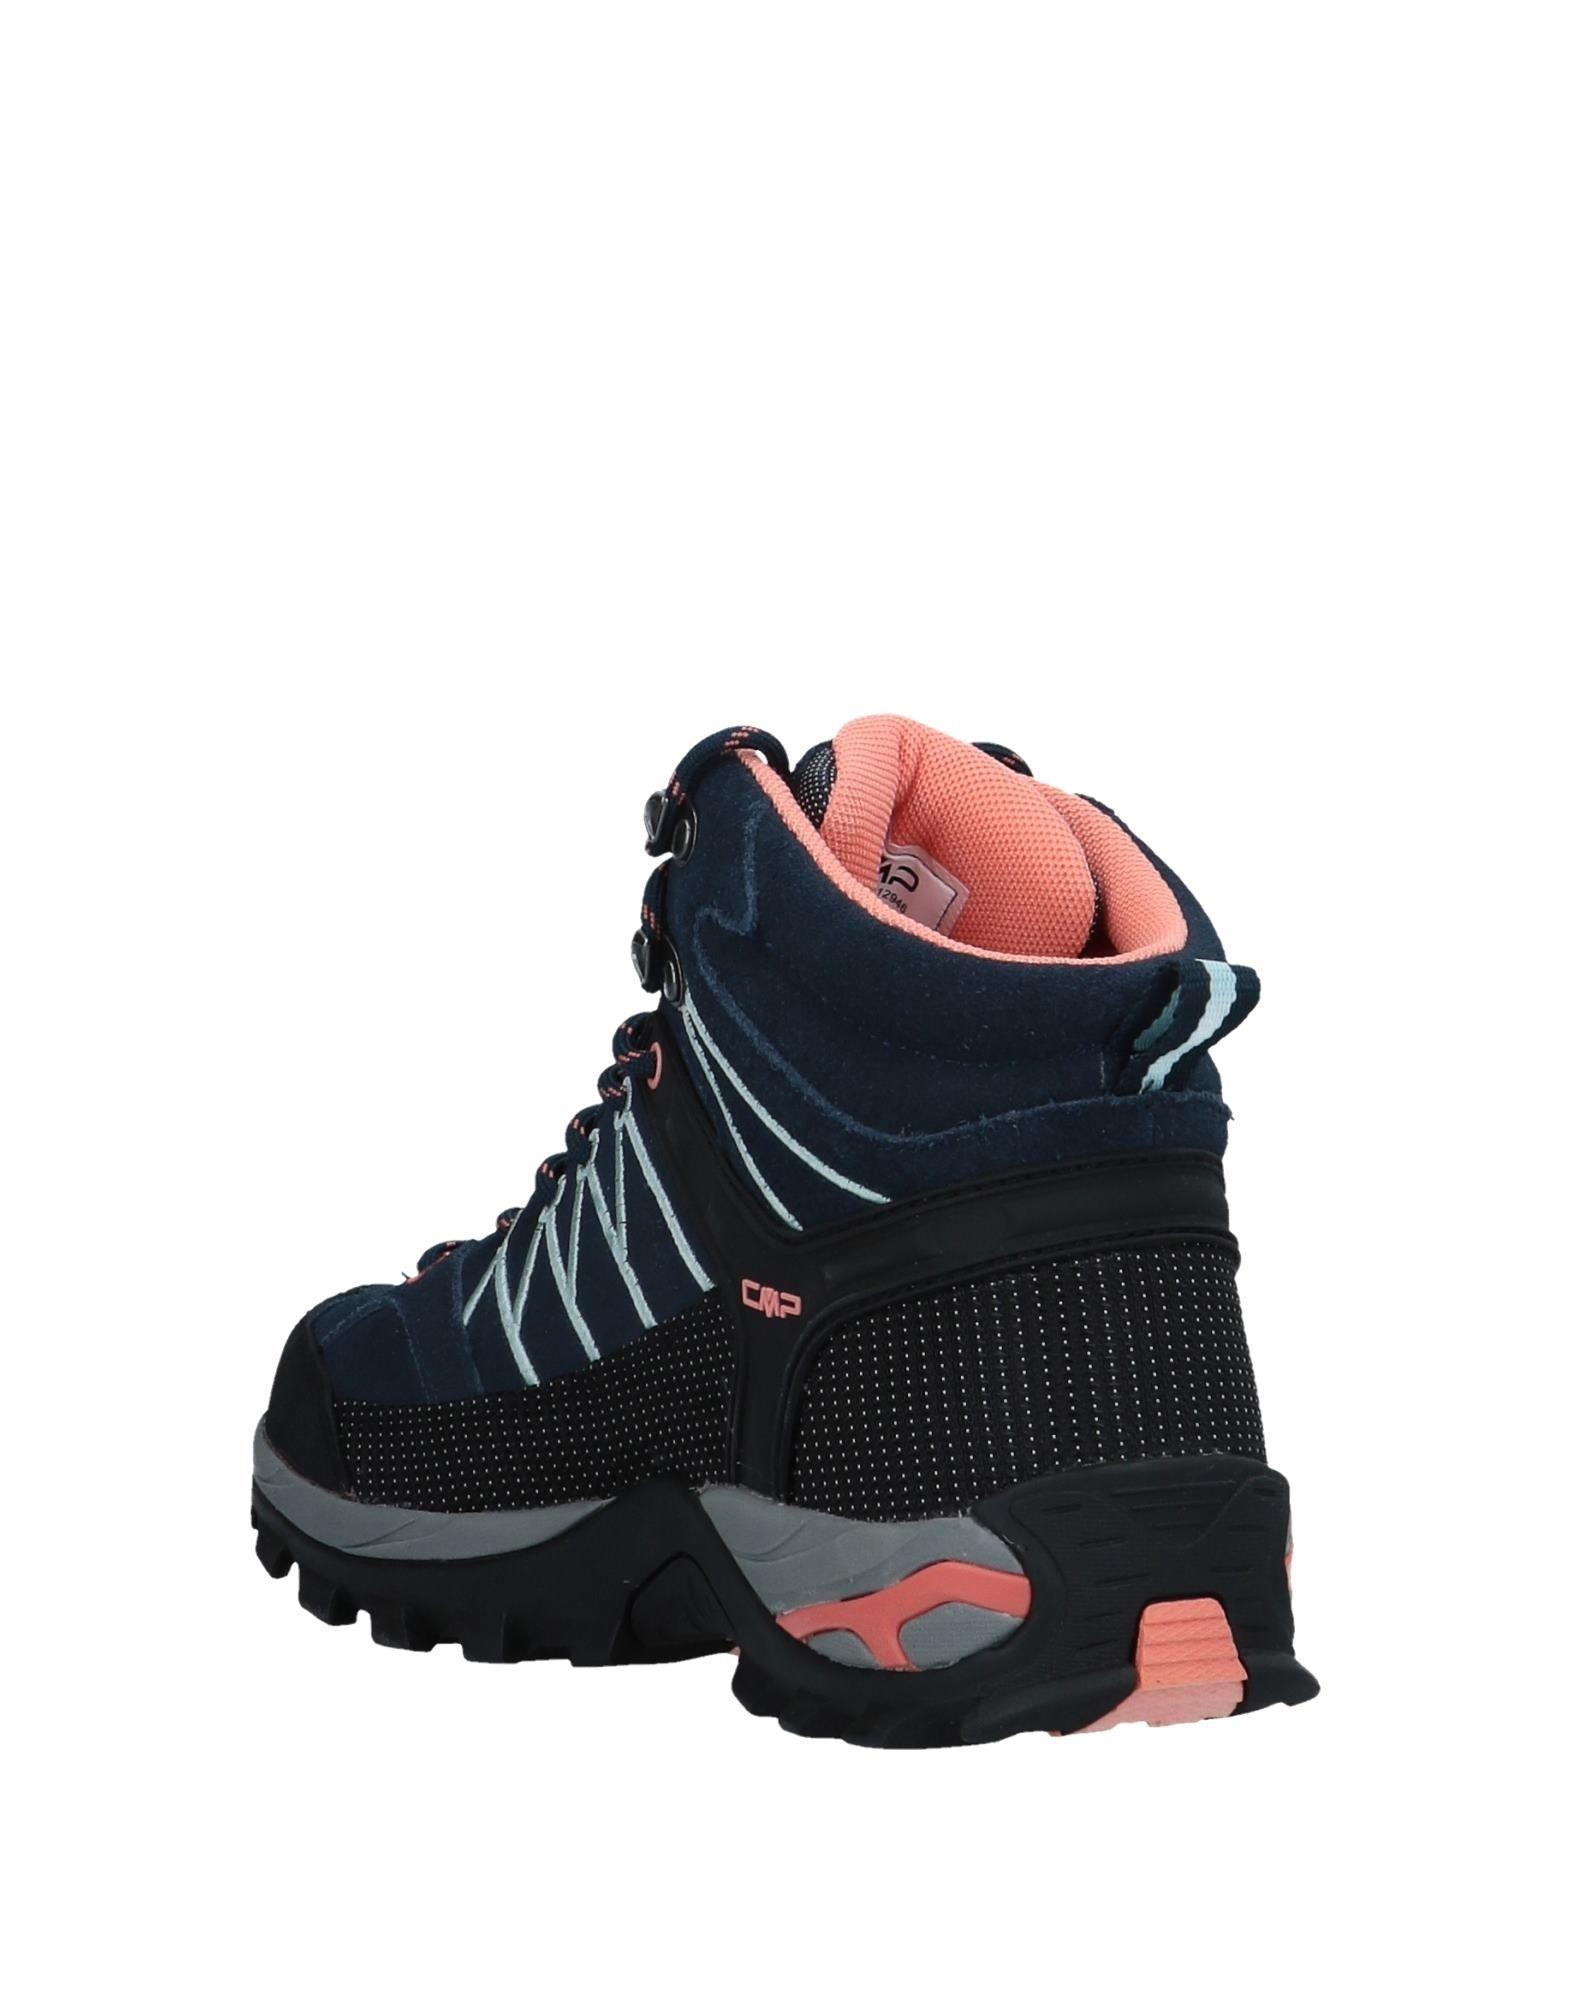 CMP by F.LLI CAMPAGNOLO Ankle boots discount get authentic free shipping best store to get cheap under $60 HMBGHXGsGu